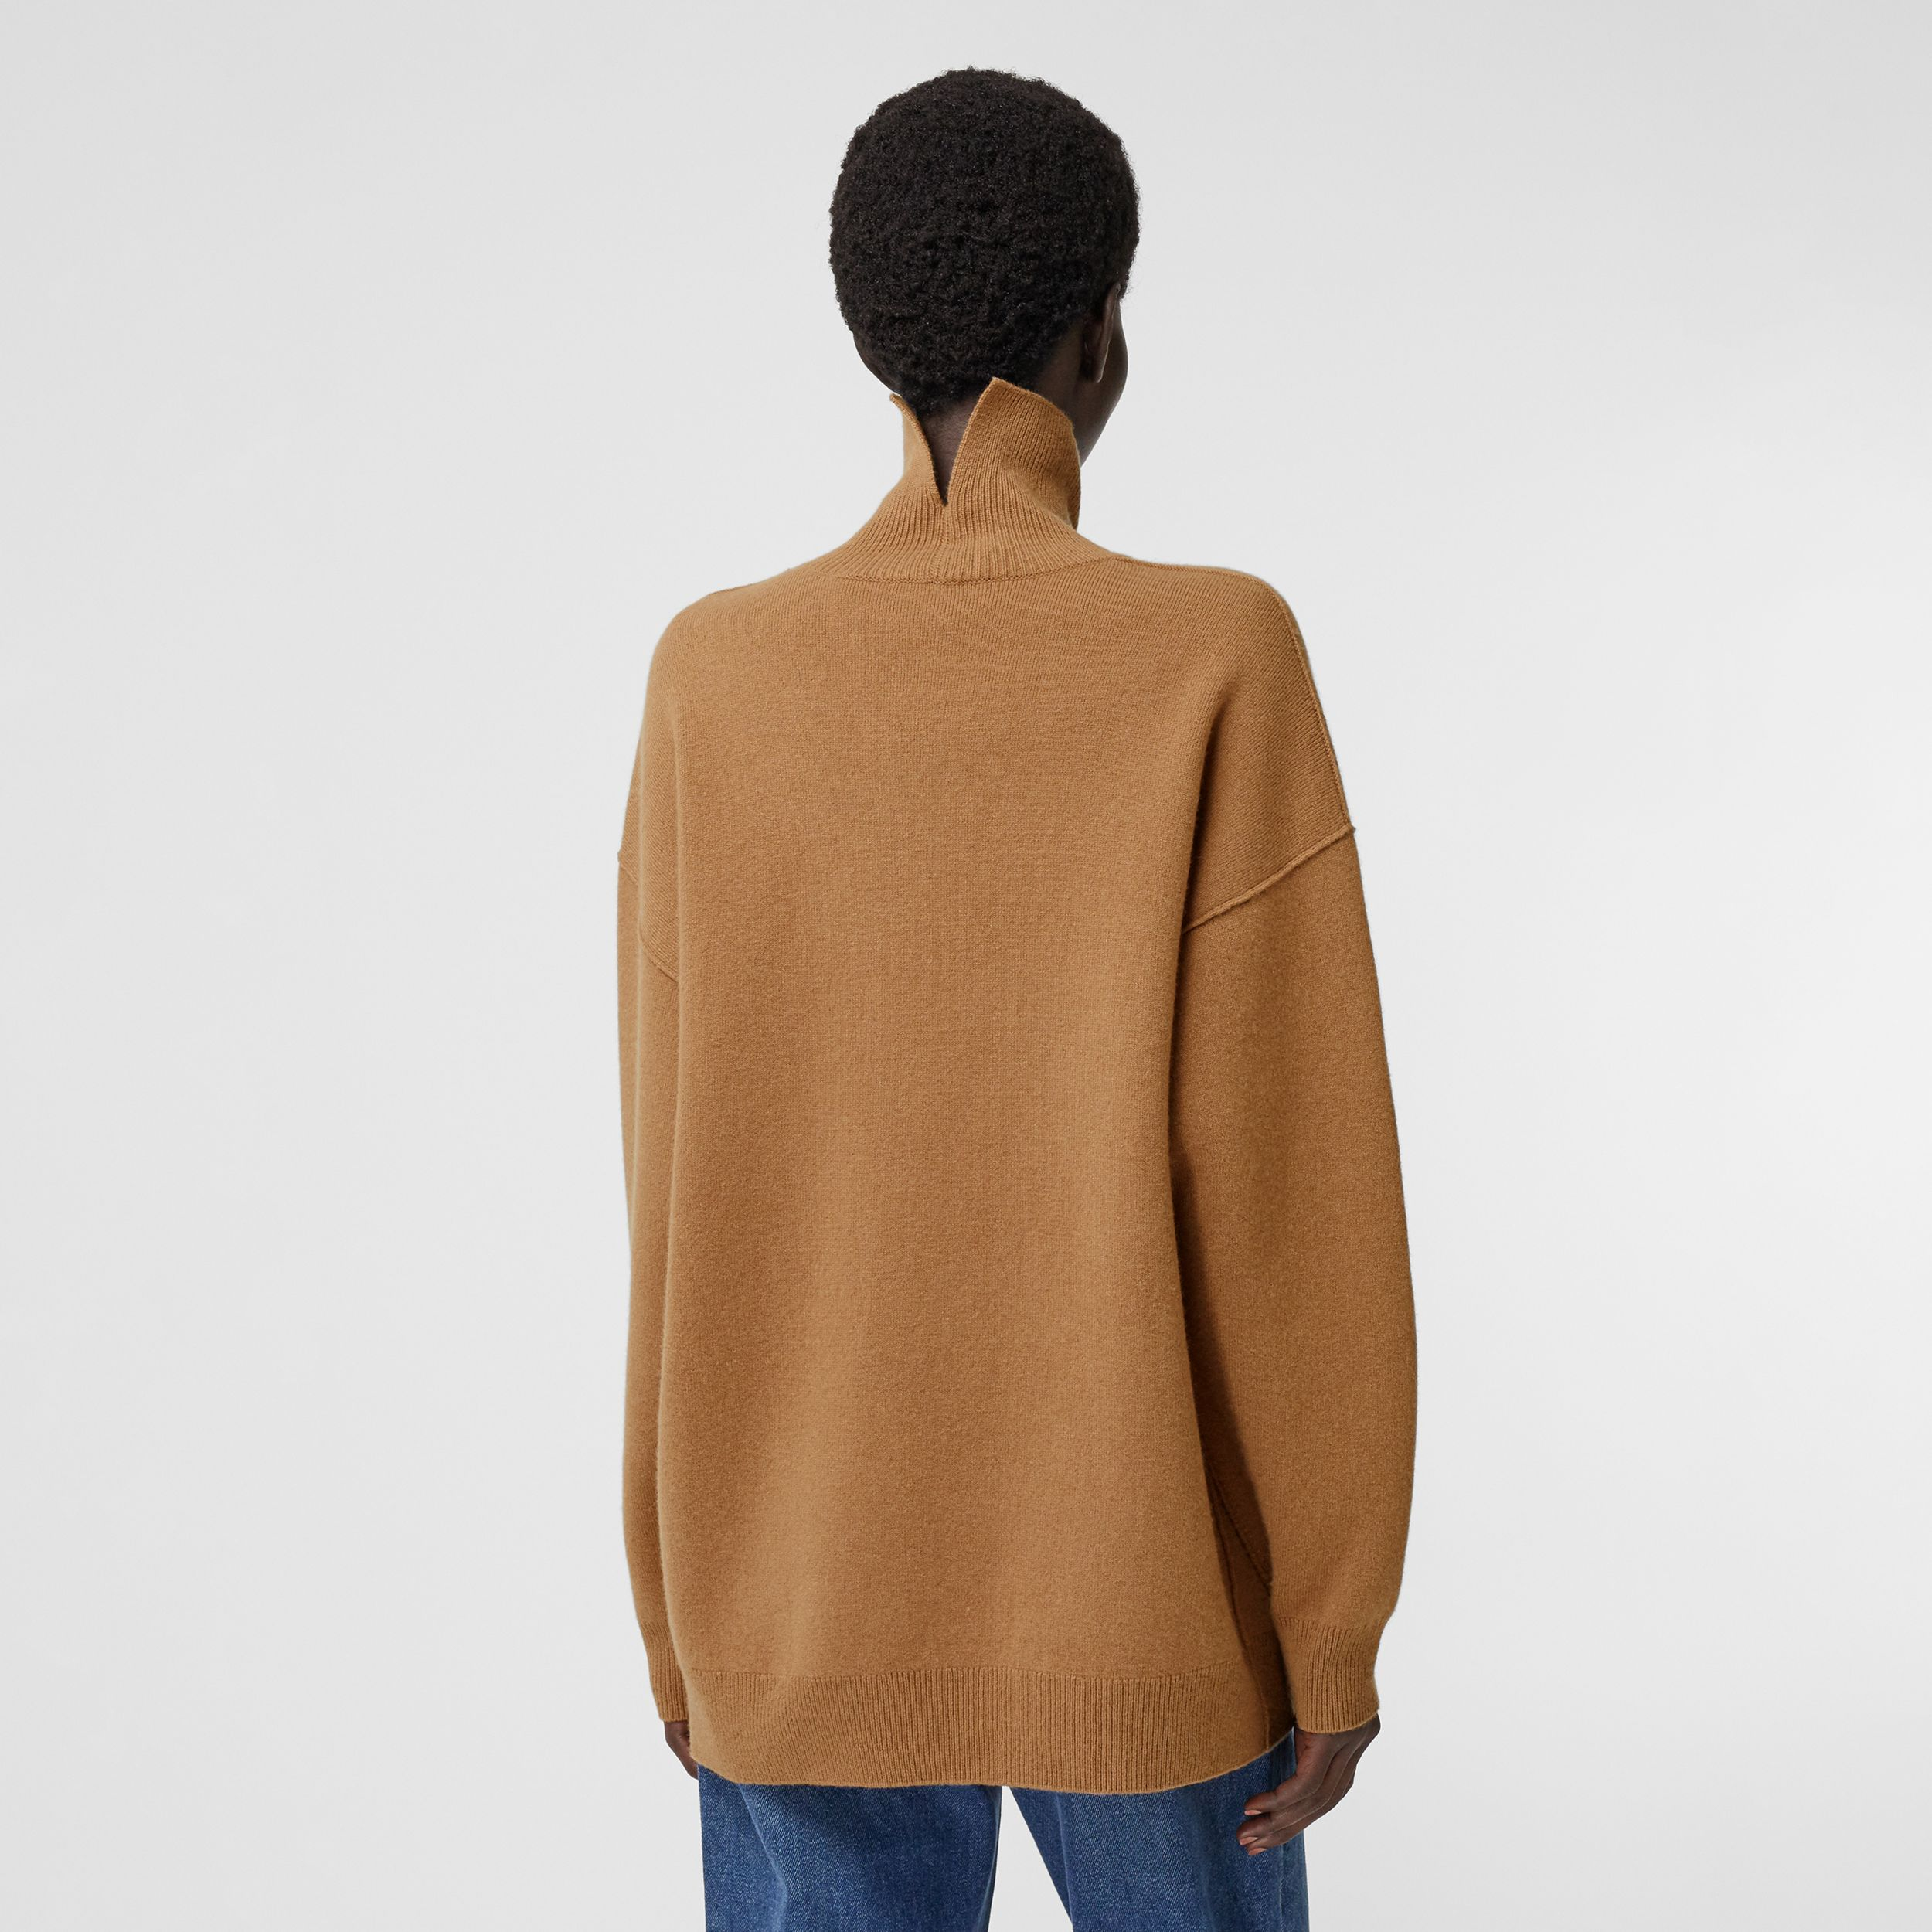 Monogram Motif Cashmere Blend Funnel Neck Sweater in Camel - Women | Burberry - 2